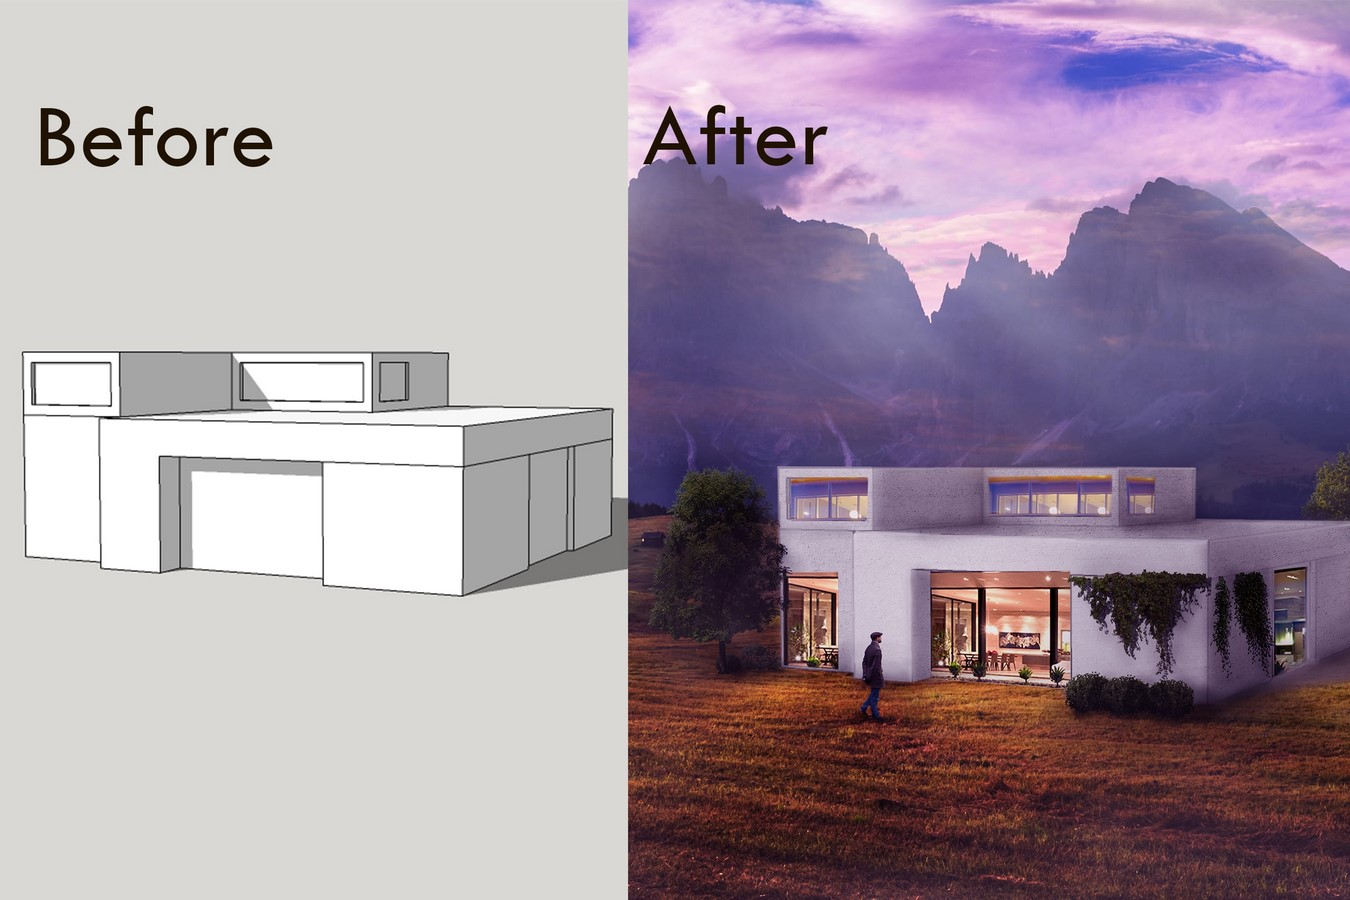 15 Photoshop tips for architects - Sheet6